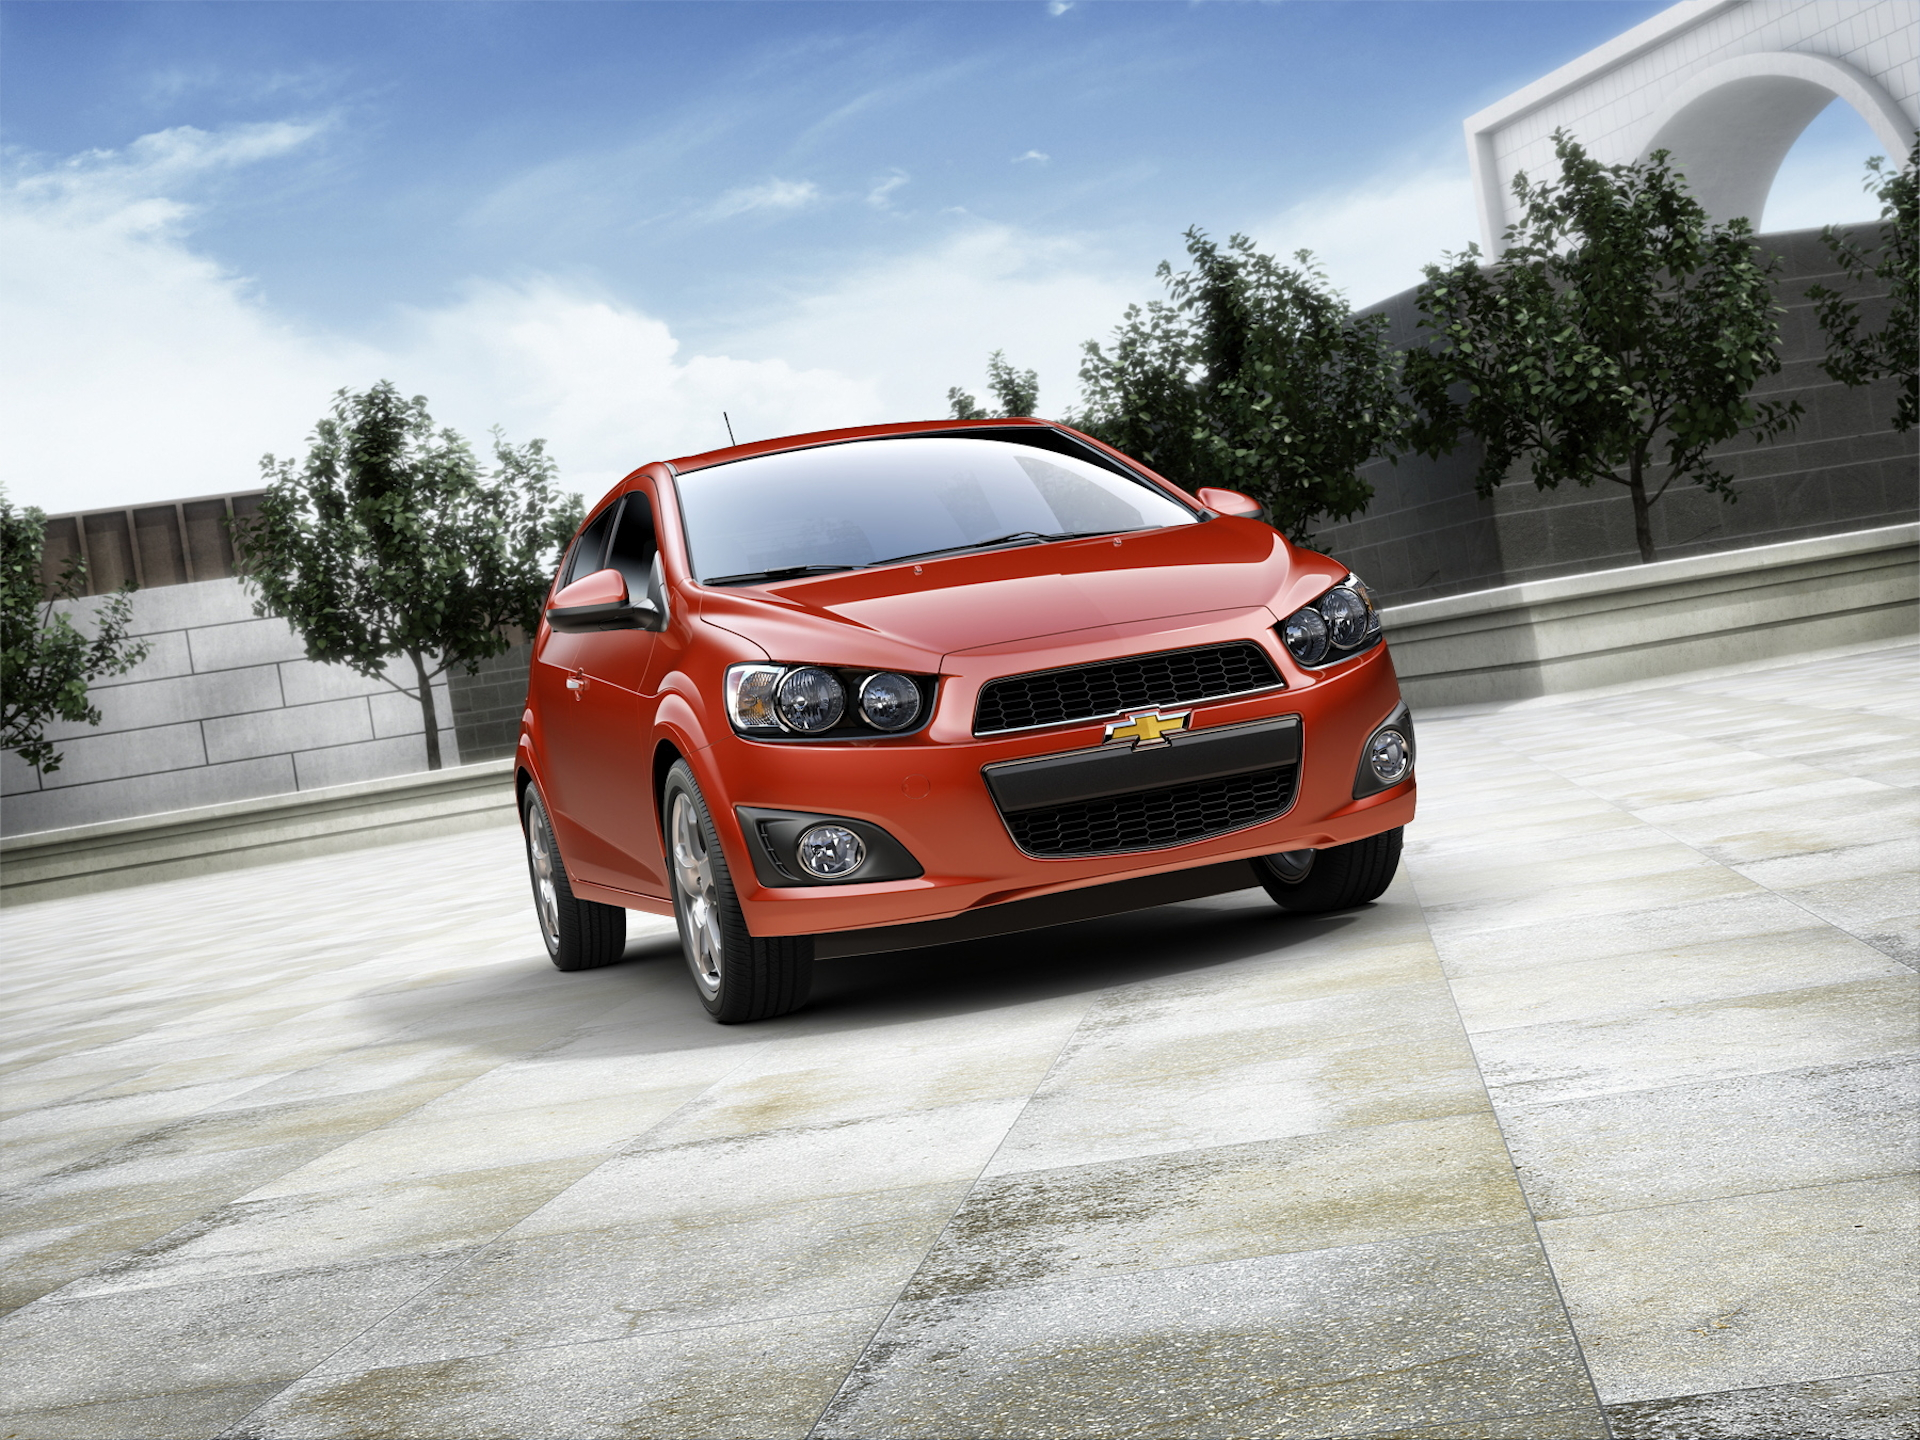 2015-chevrolet-sonic_100467743_h Great Description About 2011 Chevy Aveo Recalls with Captivating Images Cars Review